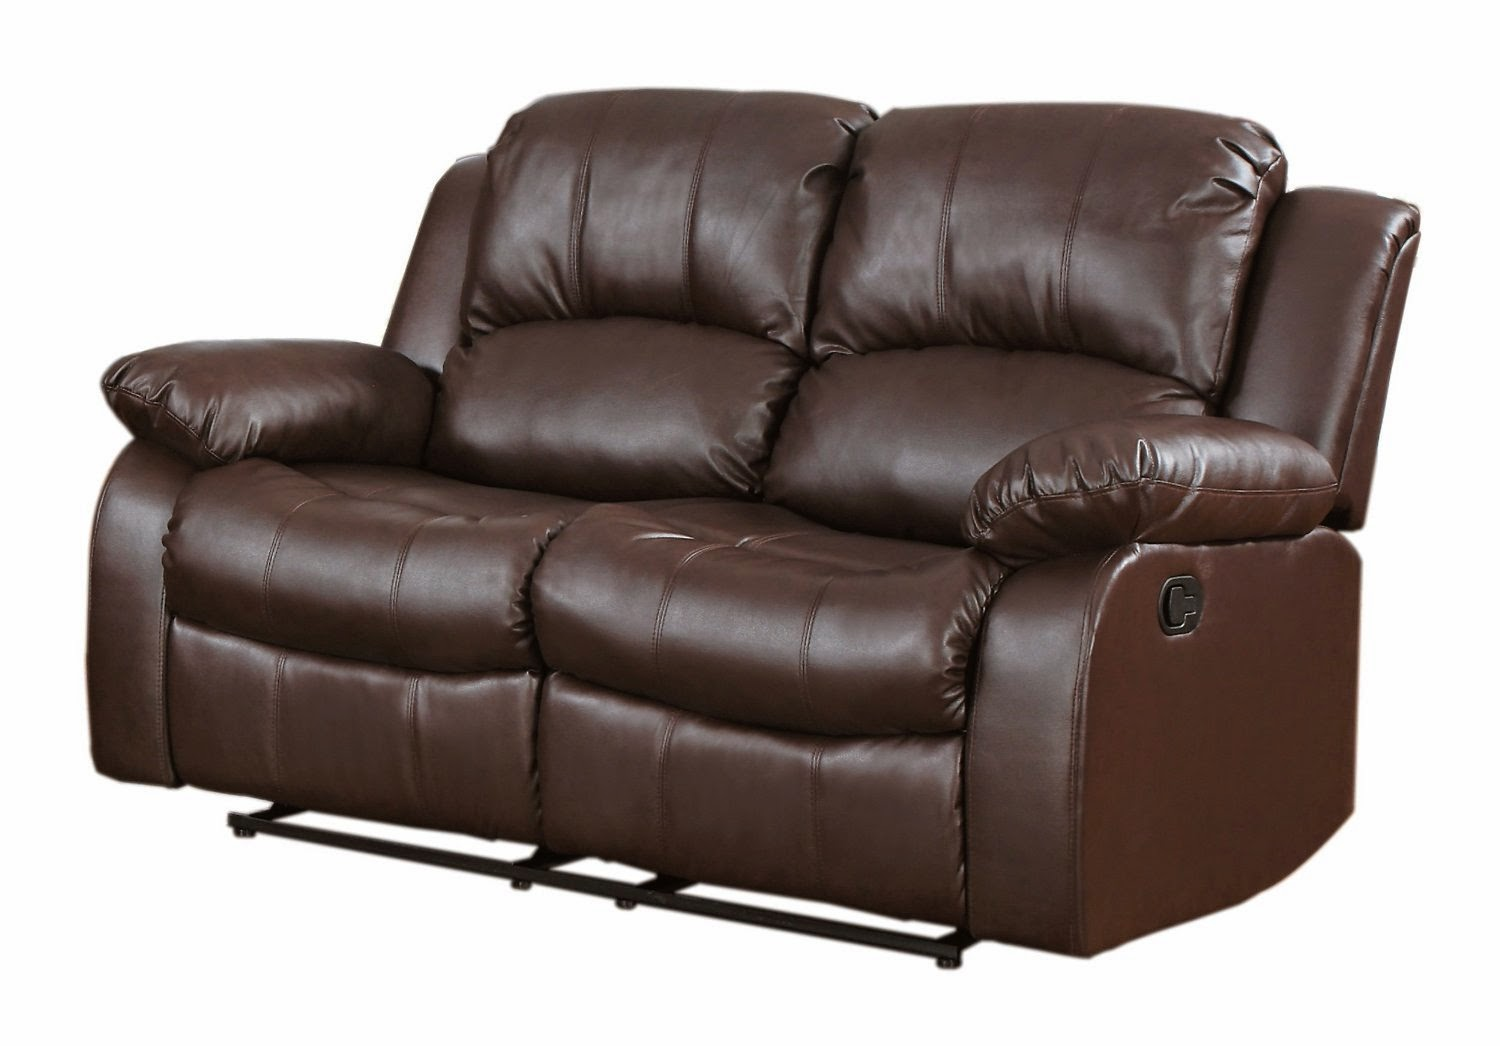 2 seater brown sofa cheapest online where is the best place to buy recliner